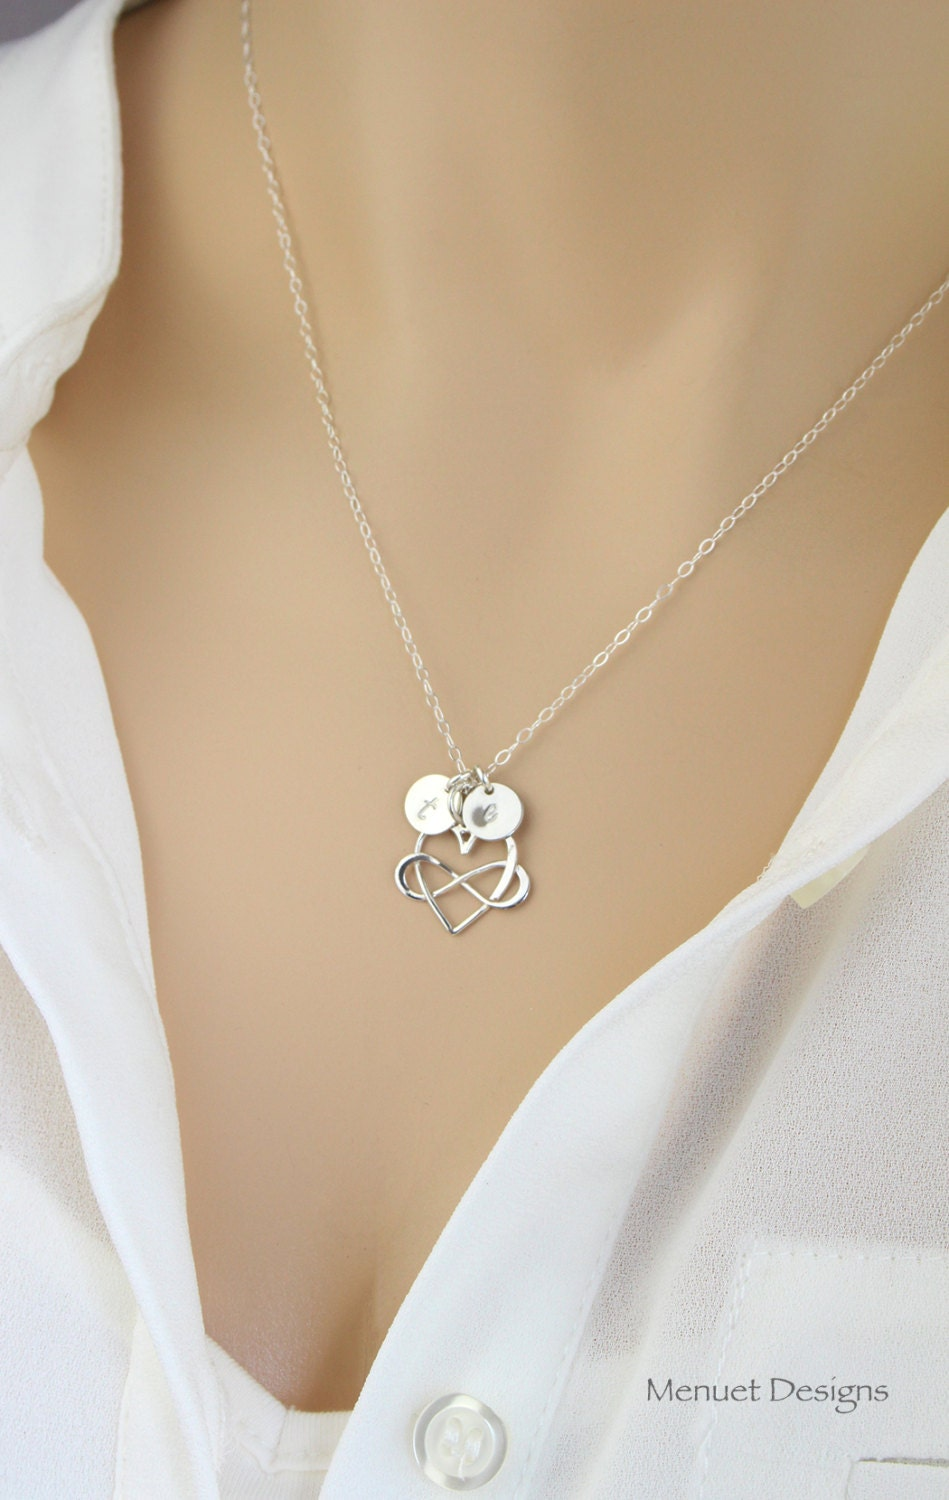 personalized silver infinity heart necklace monogram initial. Black Bedroom Furniture Sets. Home Design Ideas